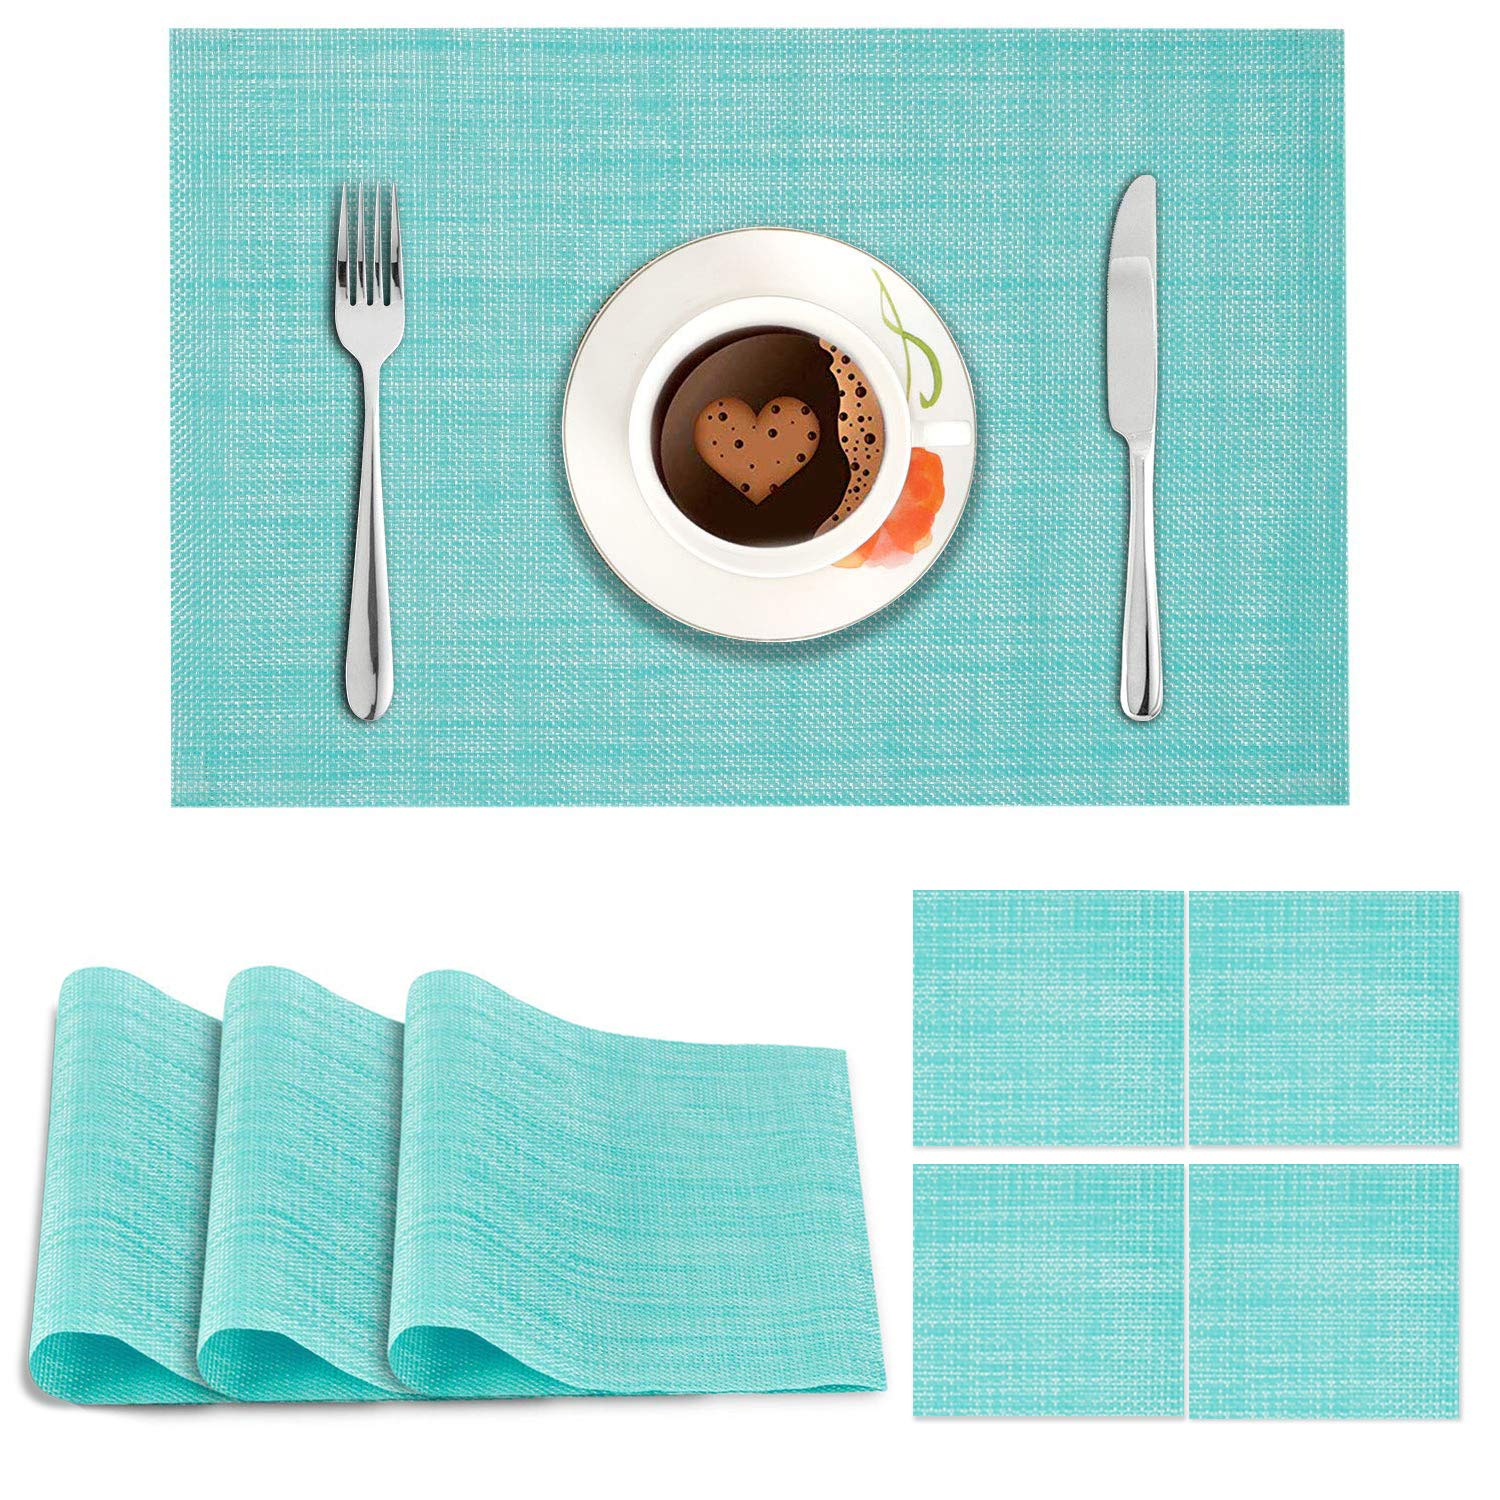 Solid Blue. AND009111. Size- 45x30 cm. Coaster Size- 10 cm